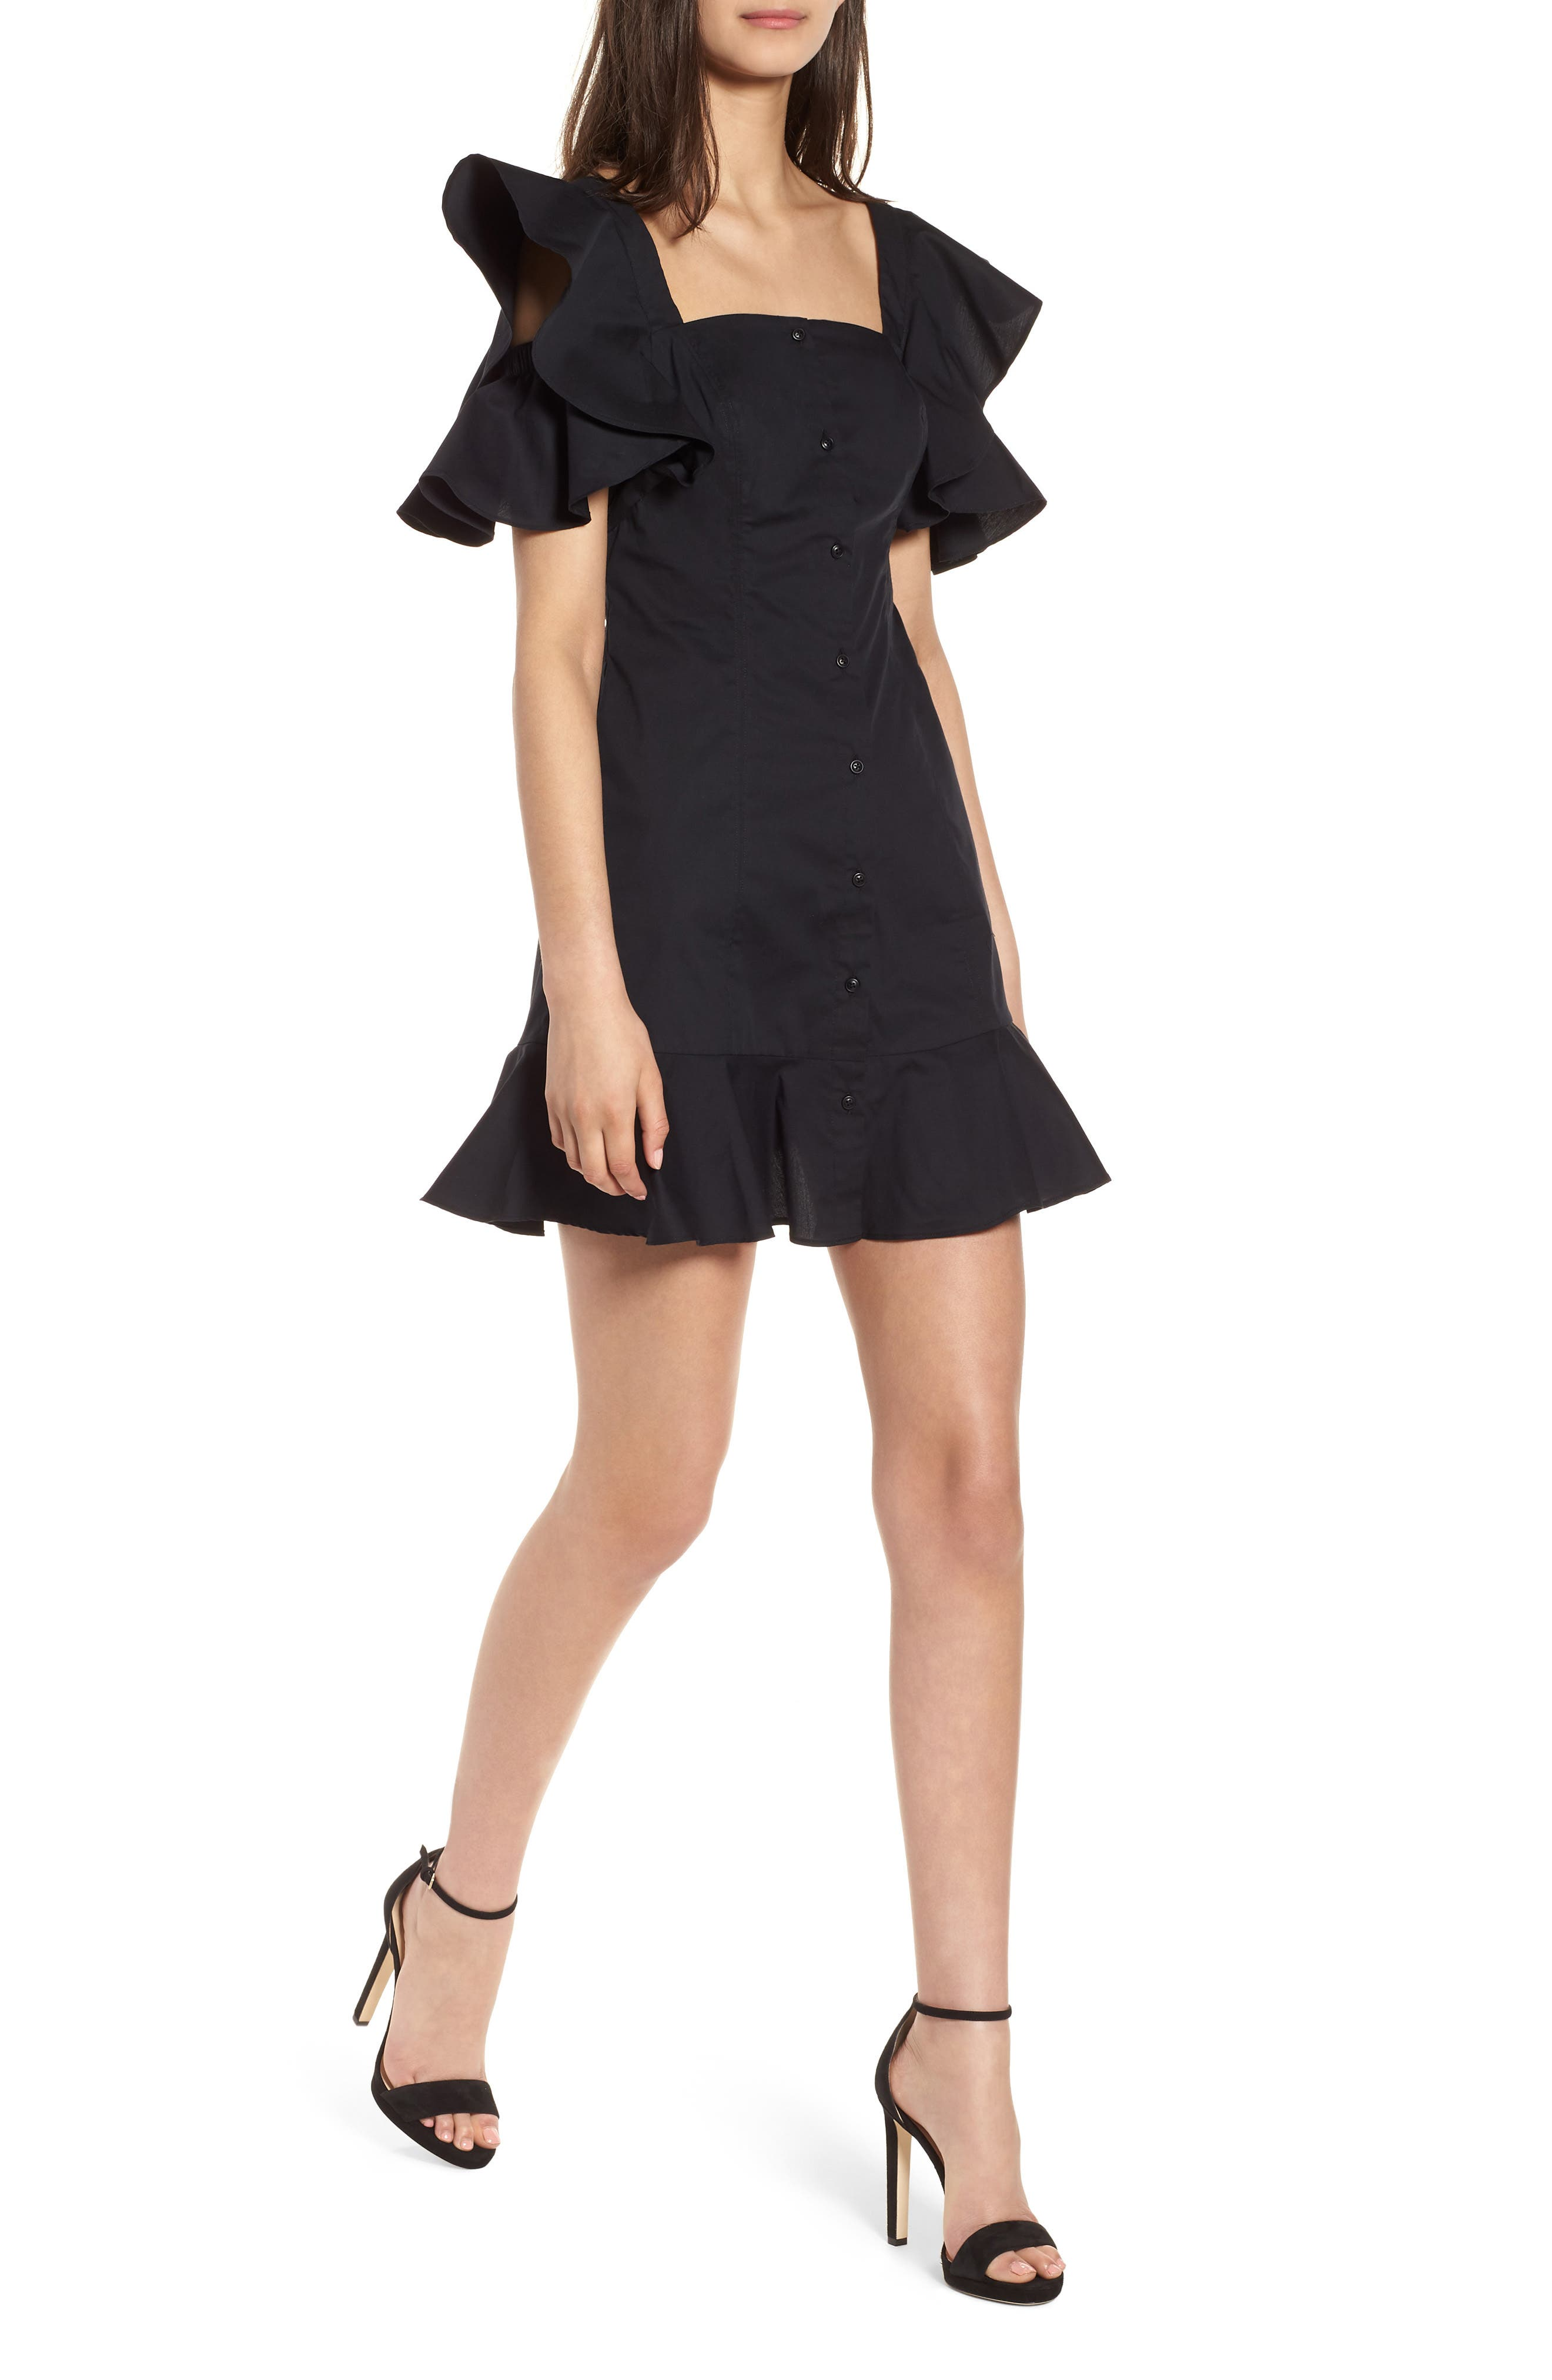 Alternate Image 1 Selected - KENDALL + KYLIE Ruffle Sleeve Dress